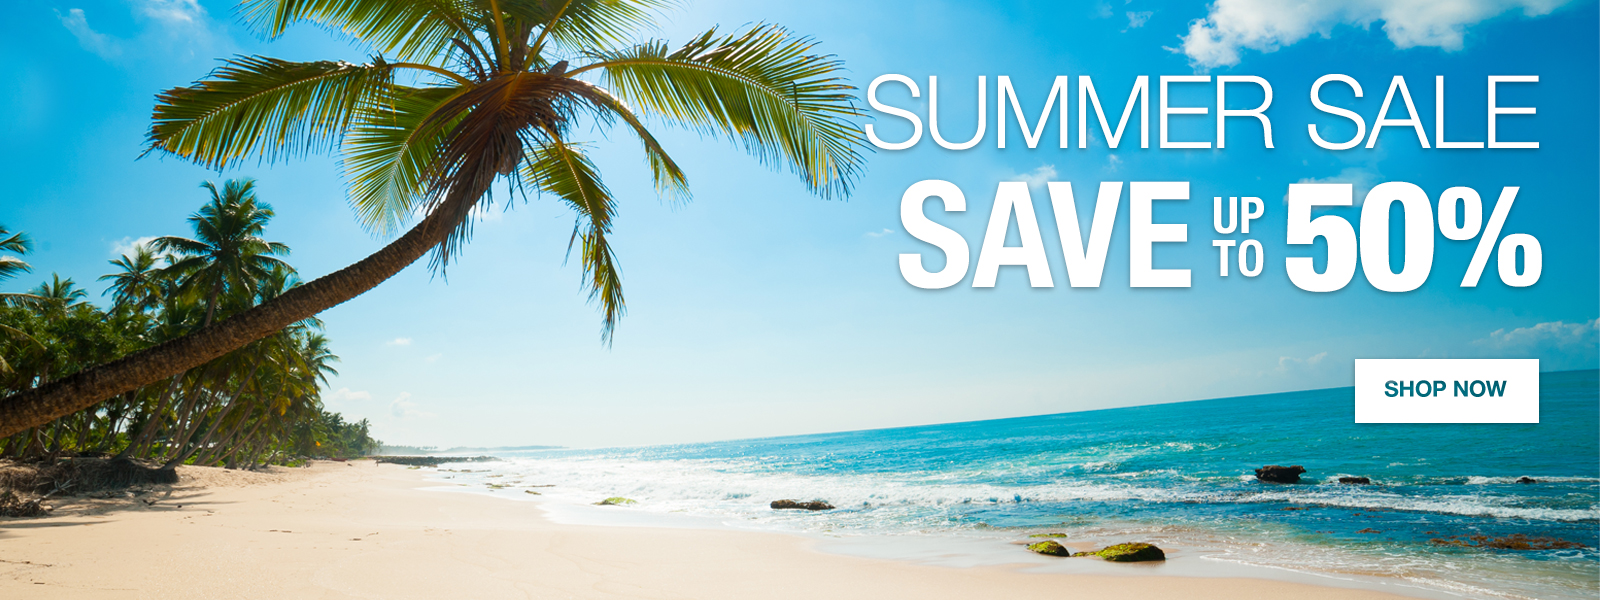 Summer Sale-Save up to 50%